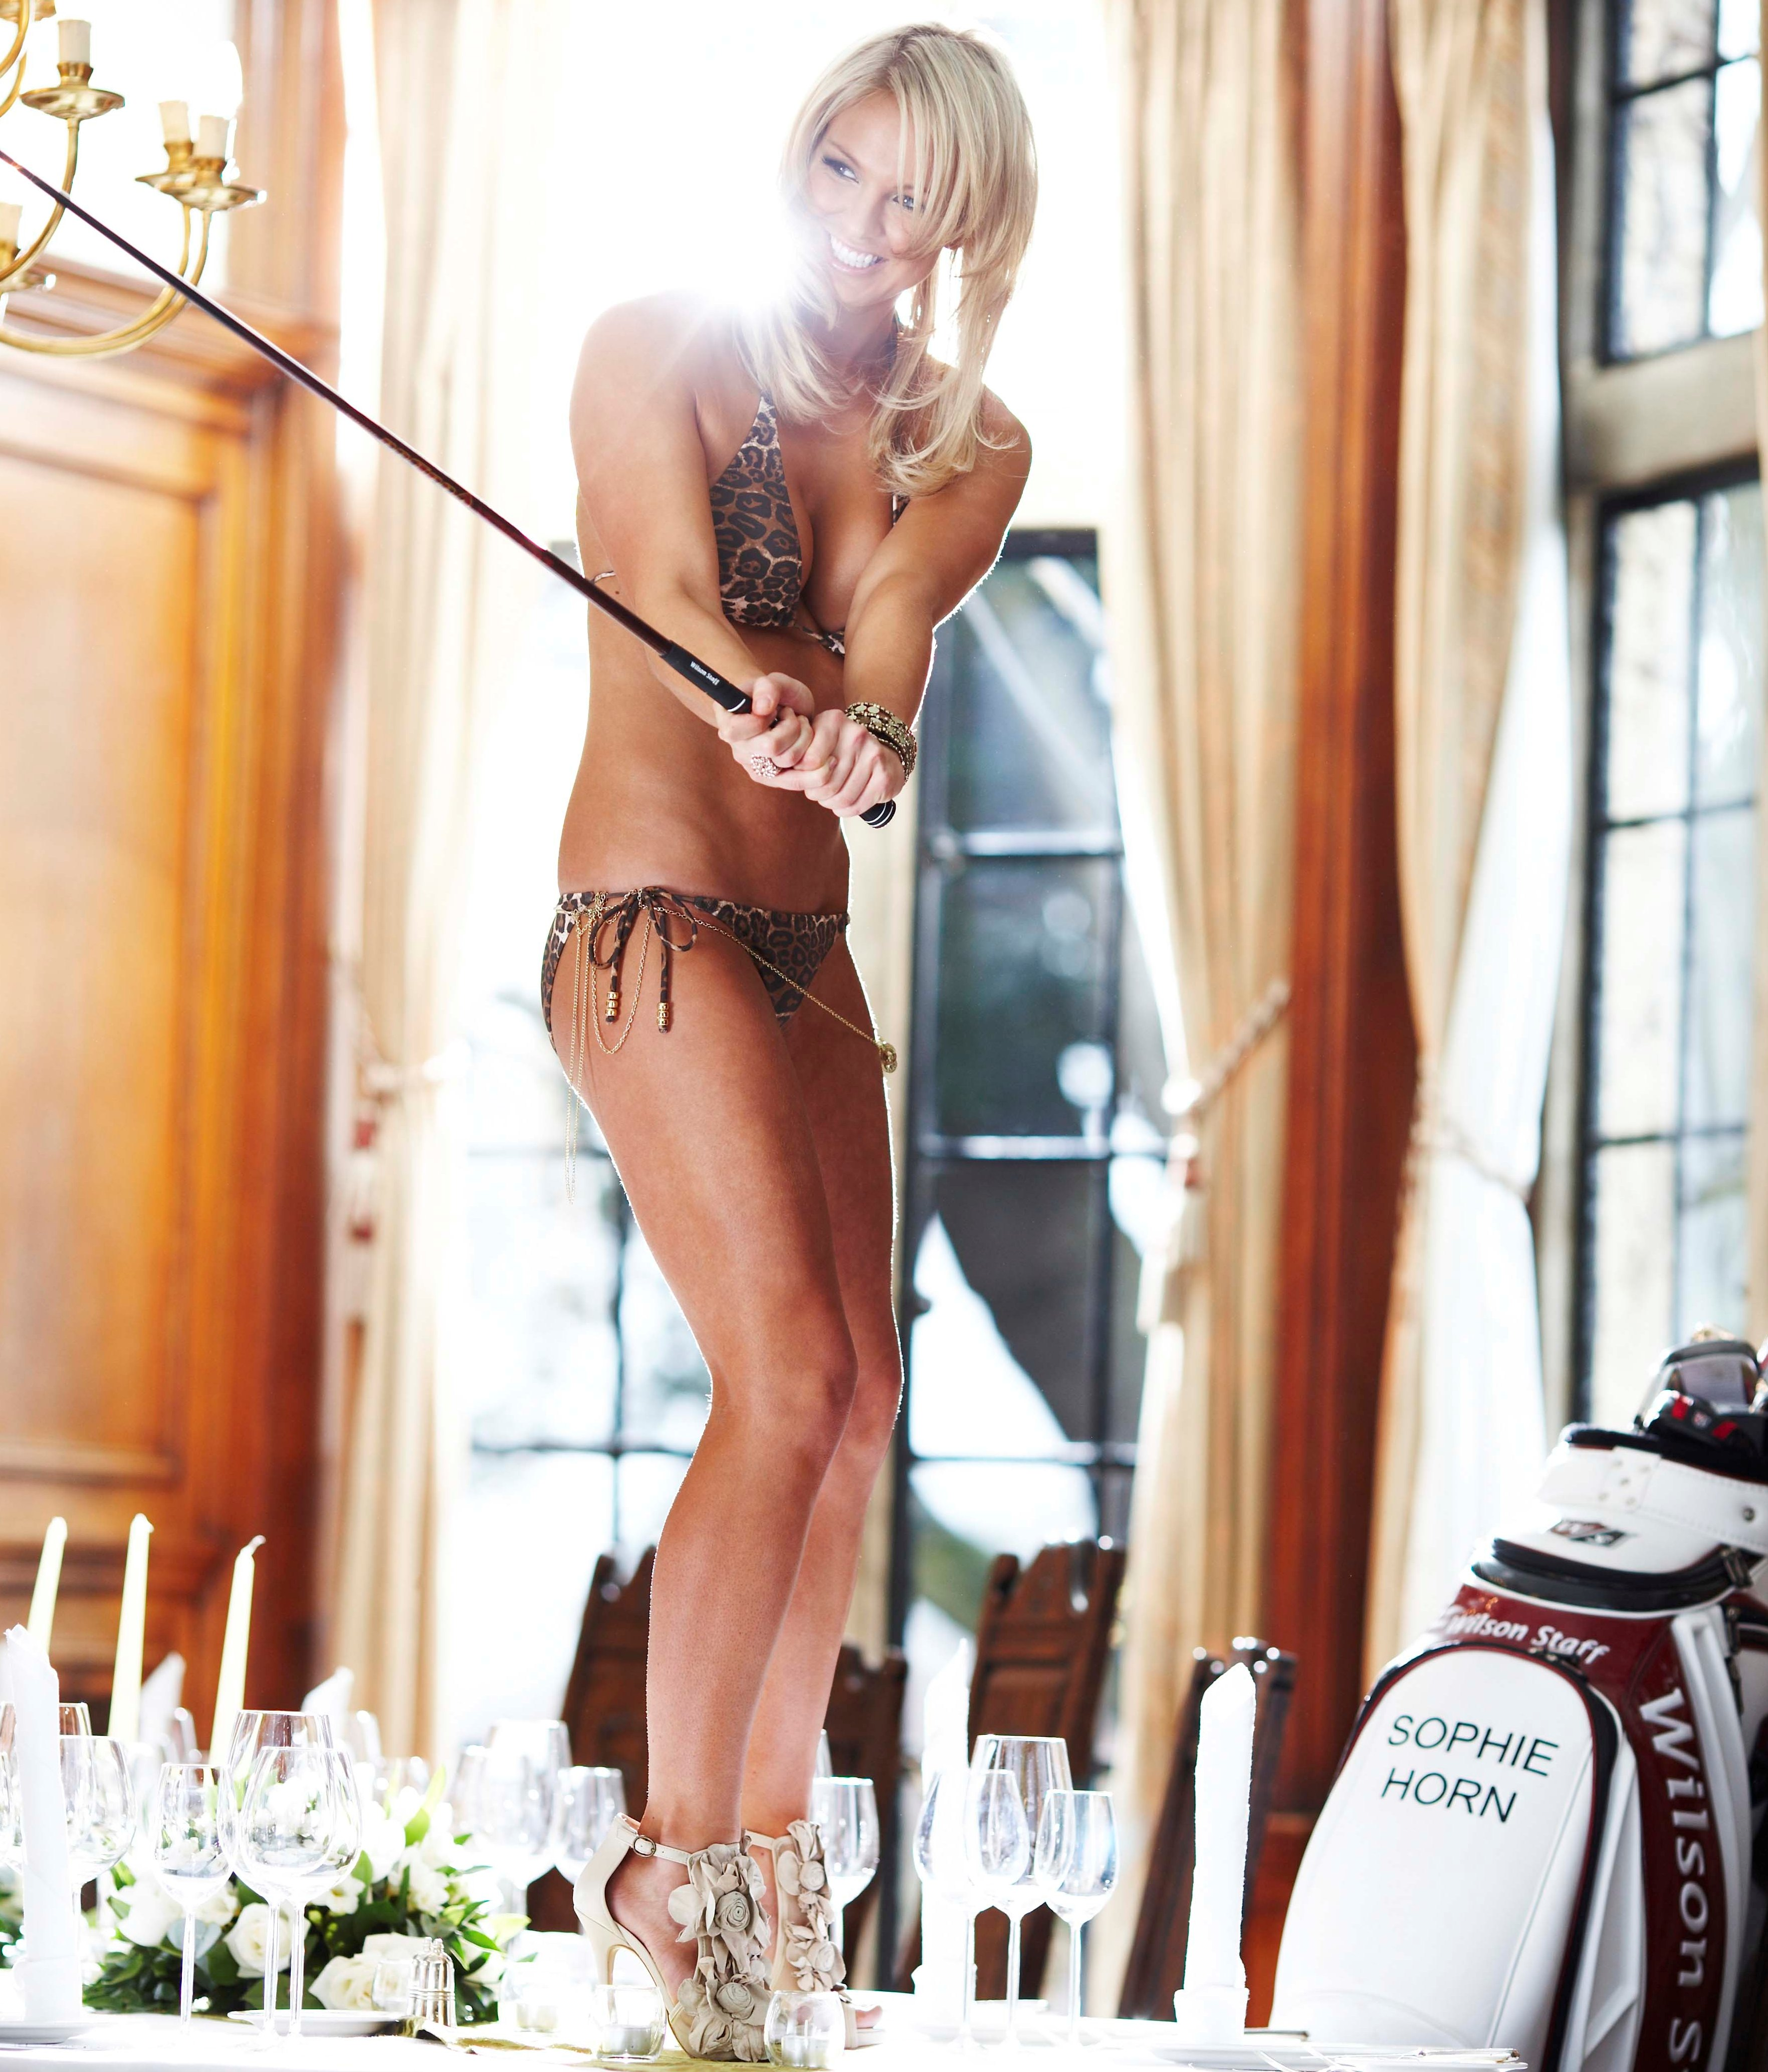 Horn was voted world's sexiest golfer